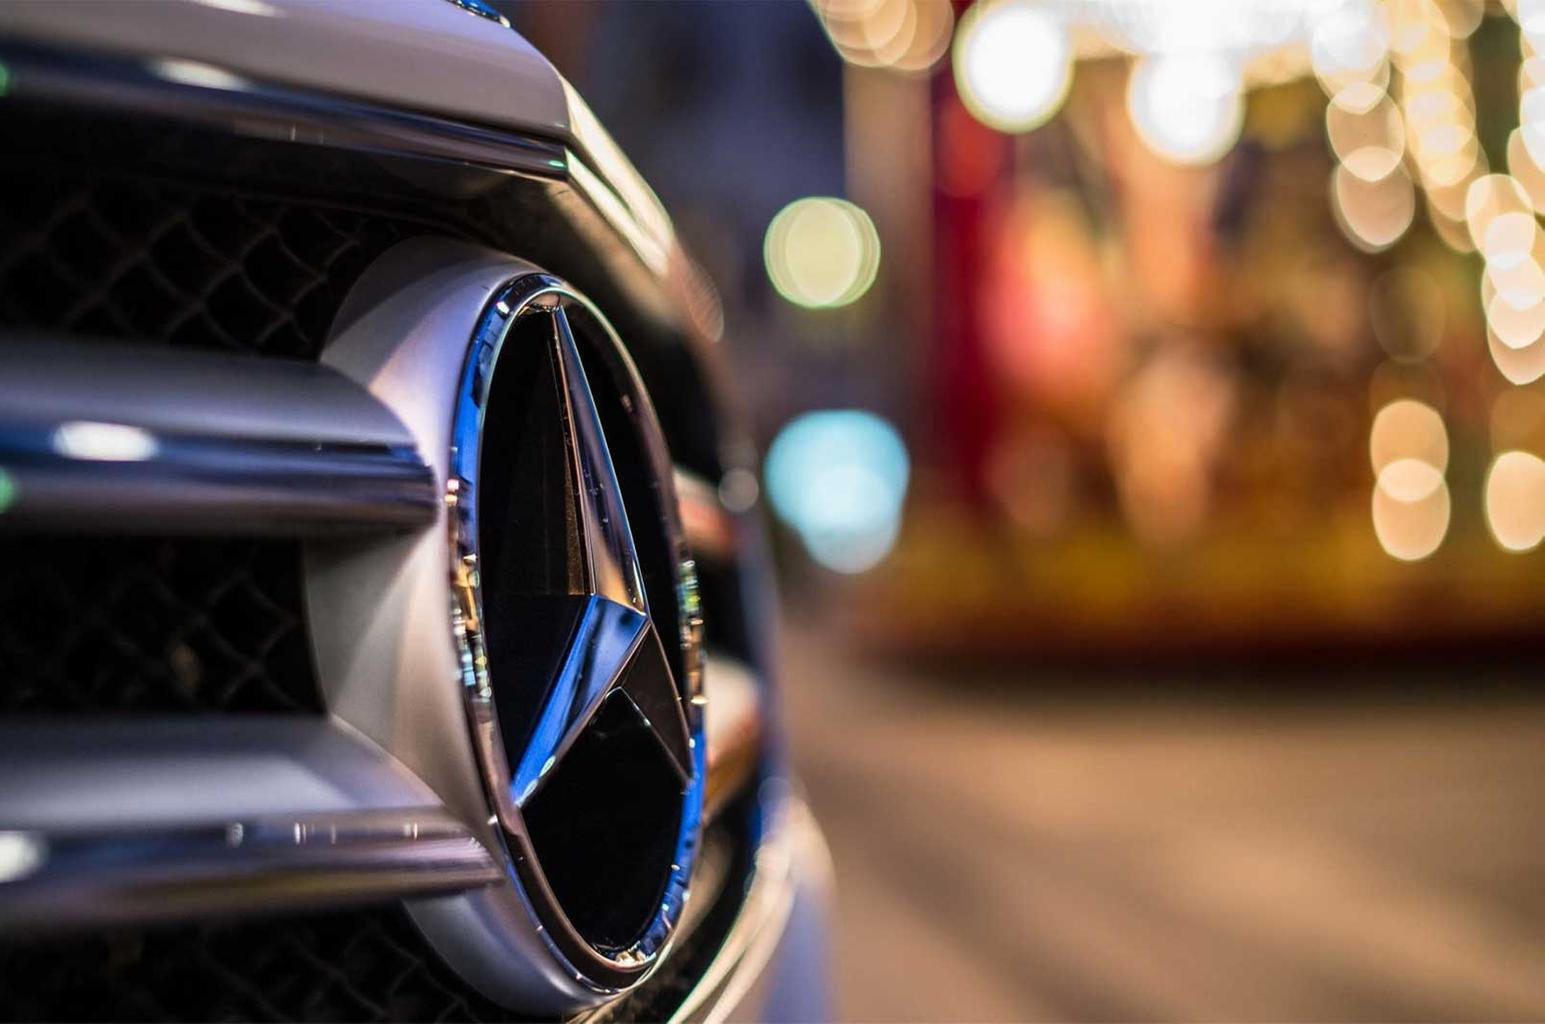 Mercedes and its sister brands to recall 3 million diesels to reduce emissions